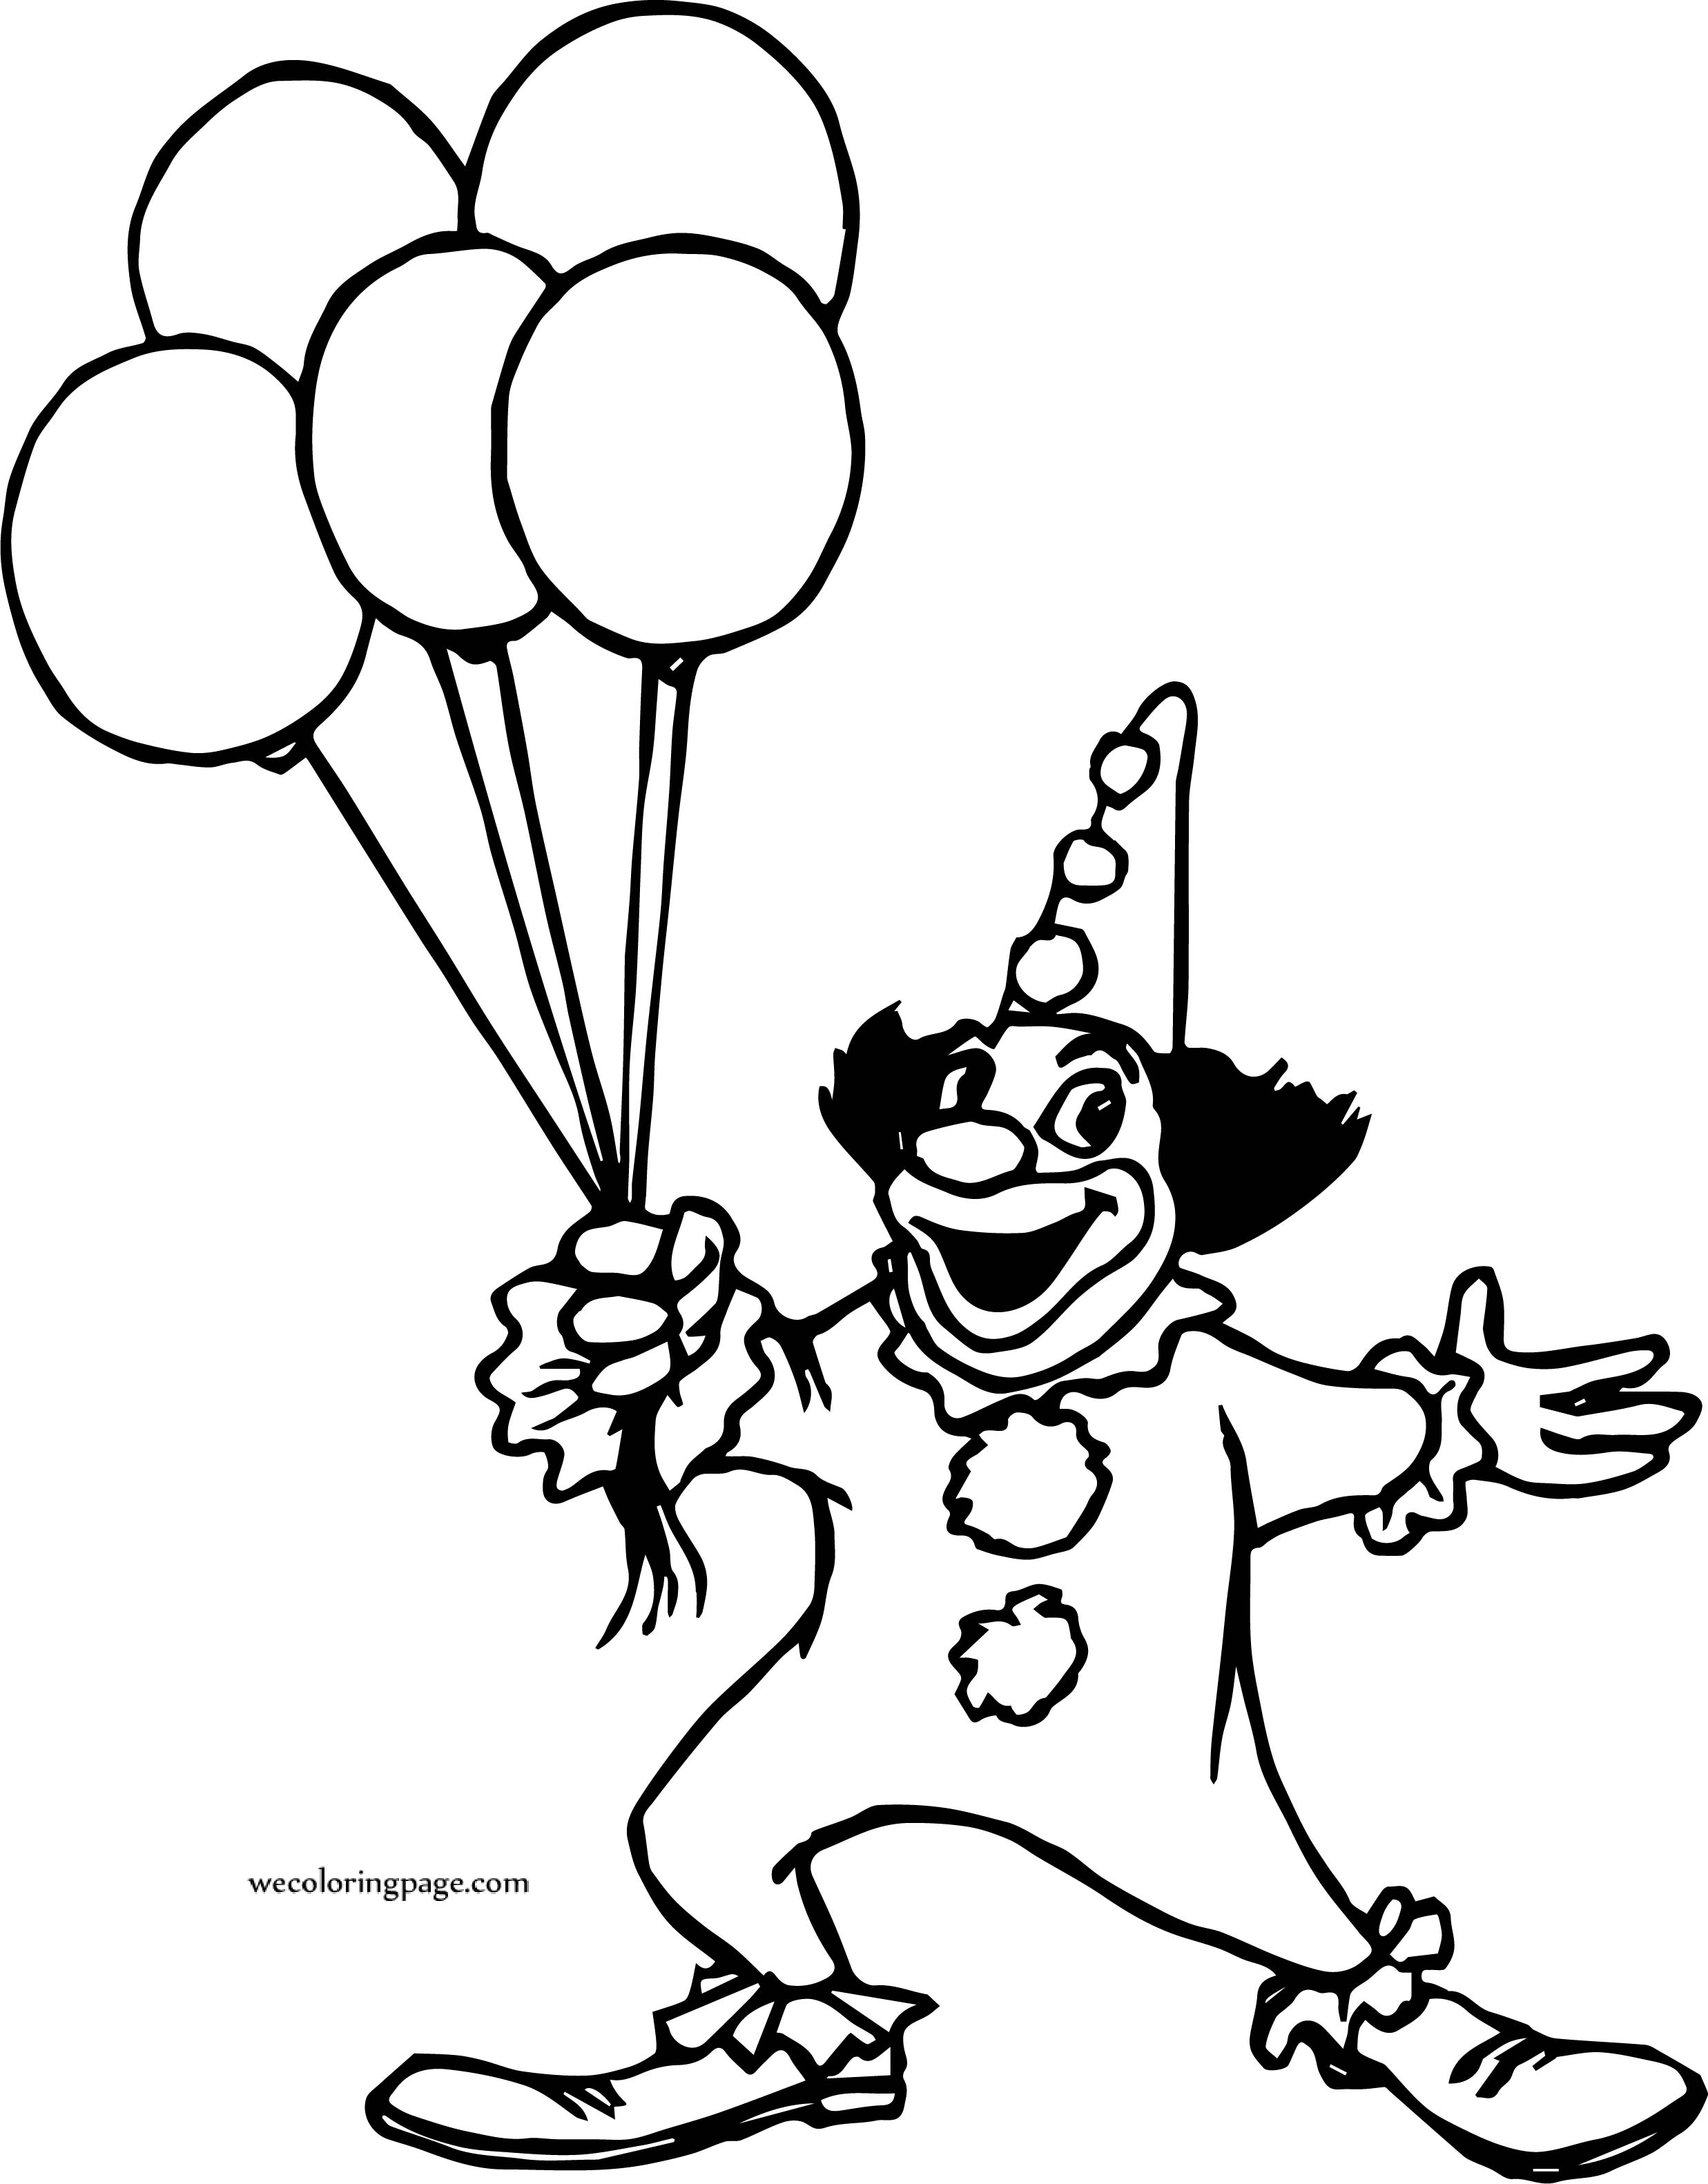 Clown Balloon Coloring Page | Wecoloringpage.com